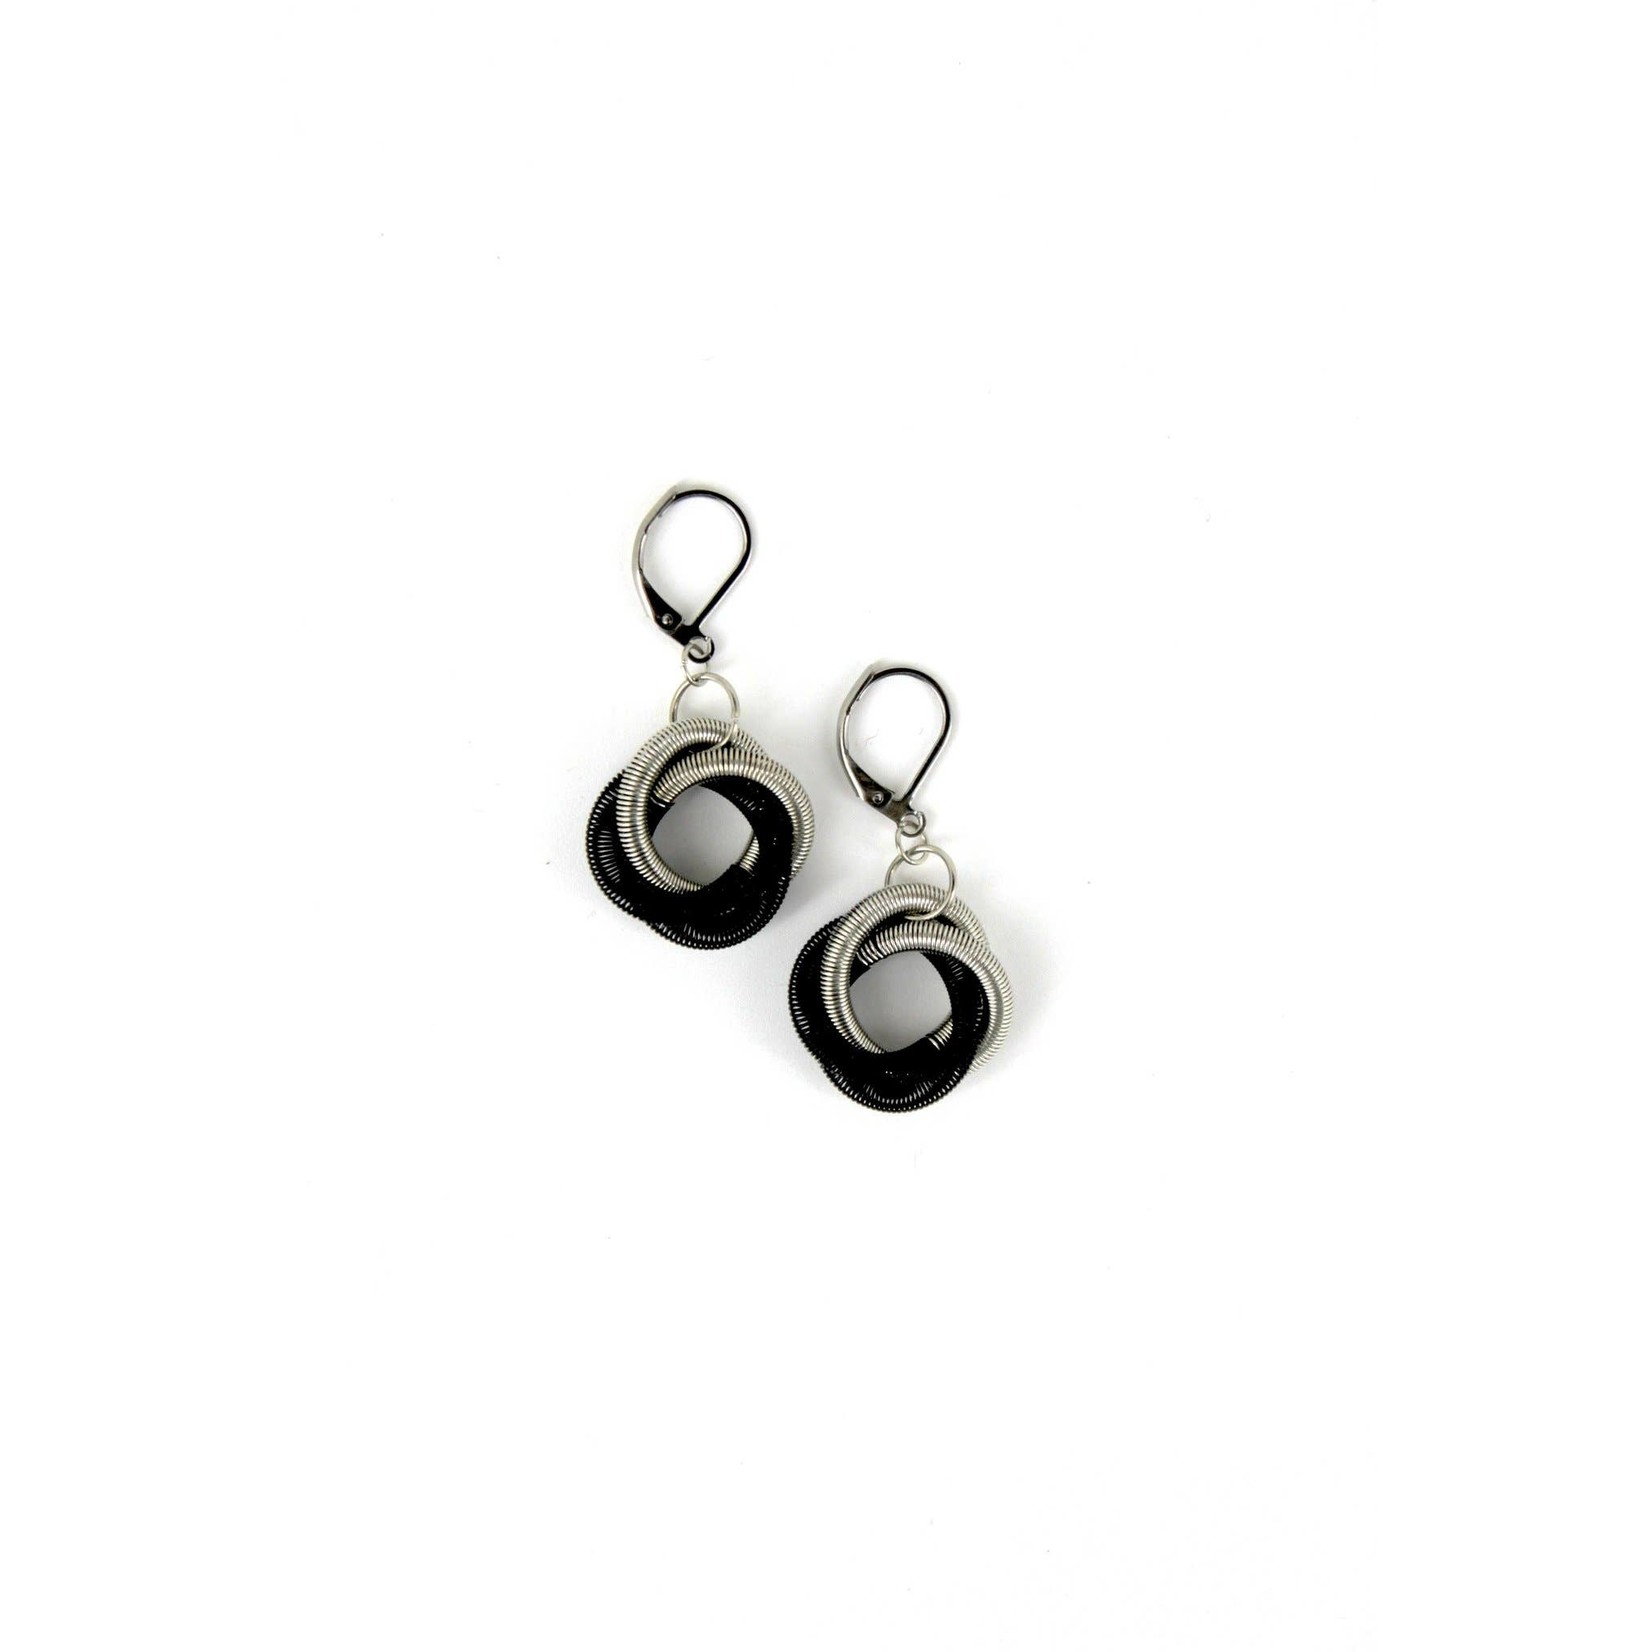 Sea Lily Silver/Black Floating Knot Piano Wire Earrings